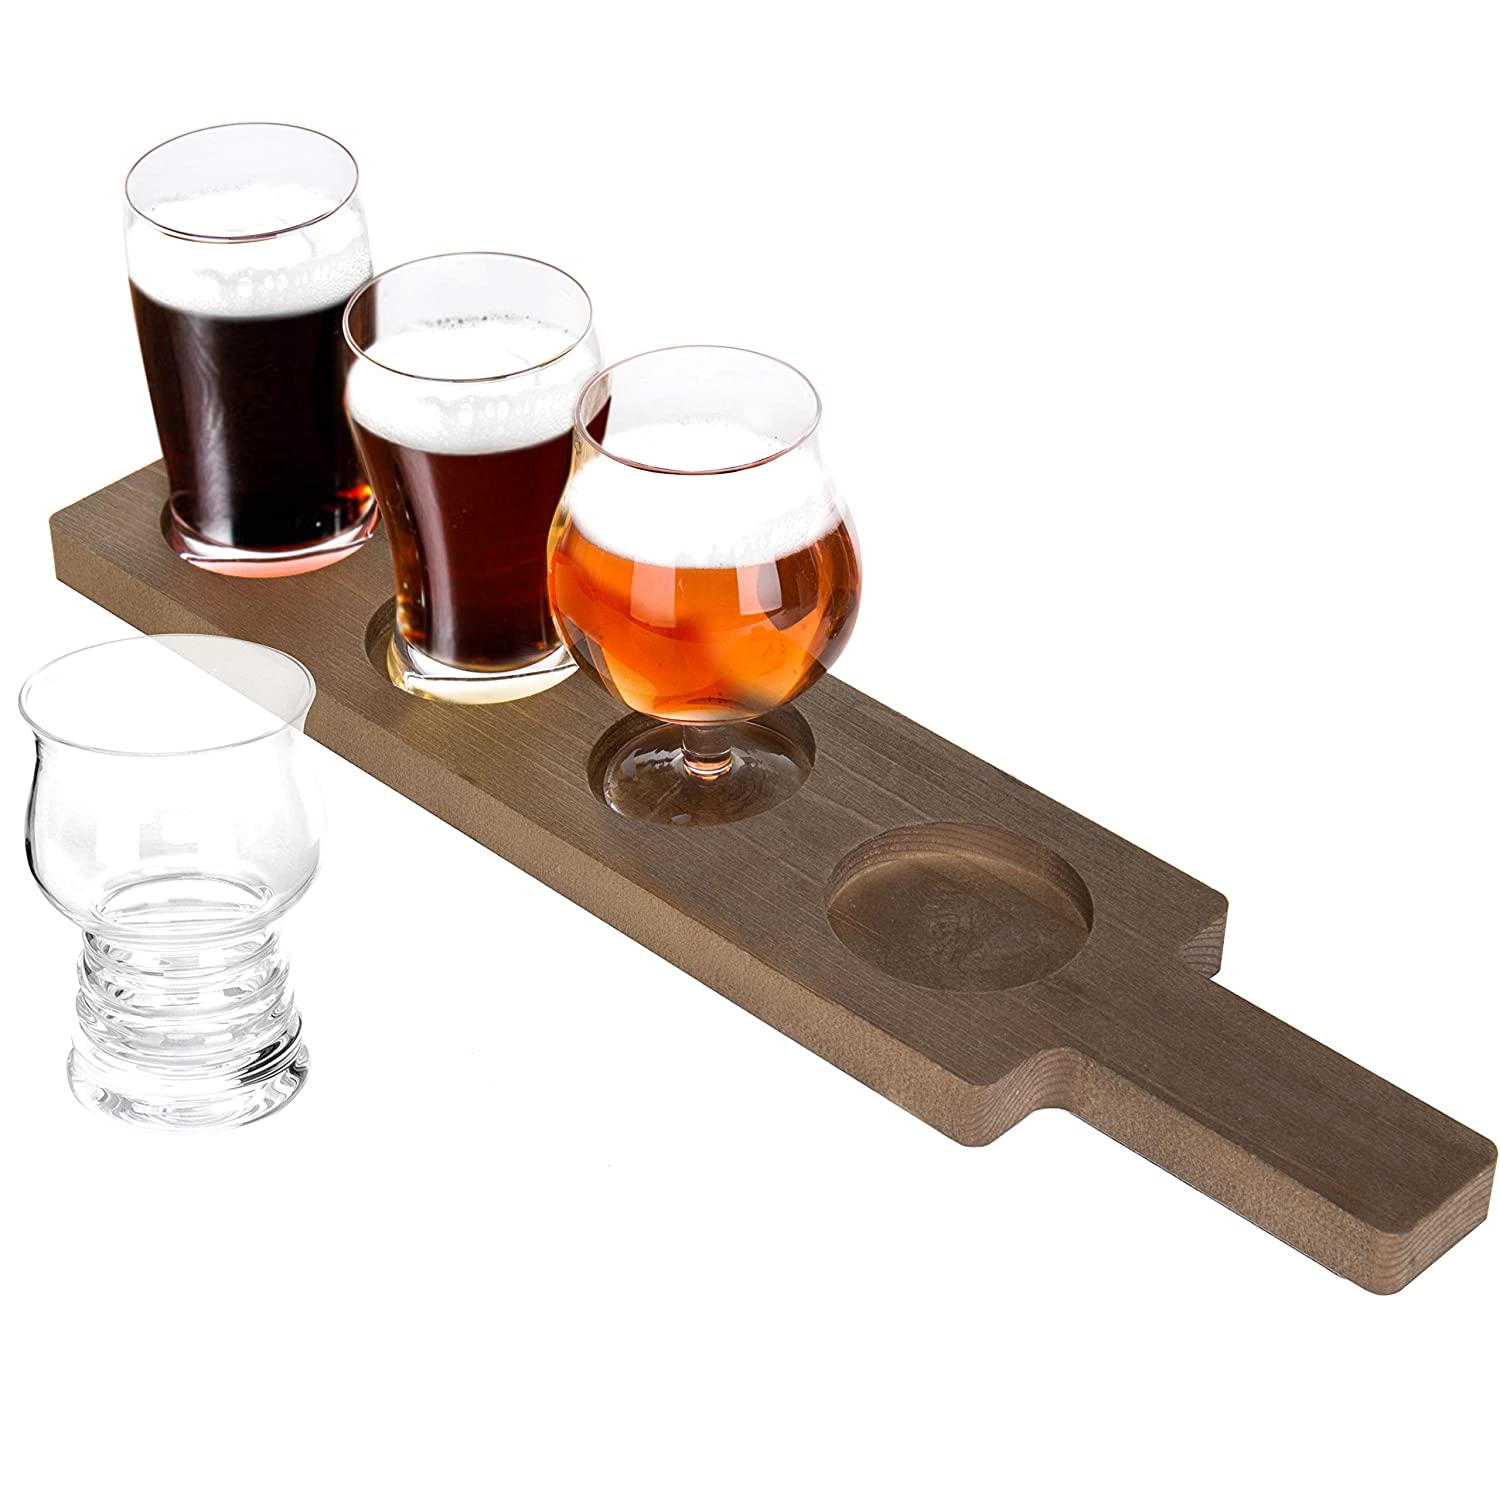 Mygift 5 Piece Variety Craft Beer Tasting Flight Set With 4 Glasses Wood Paddle Serving Tray